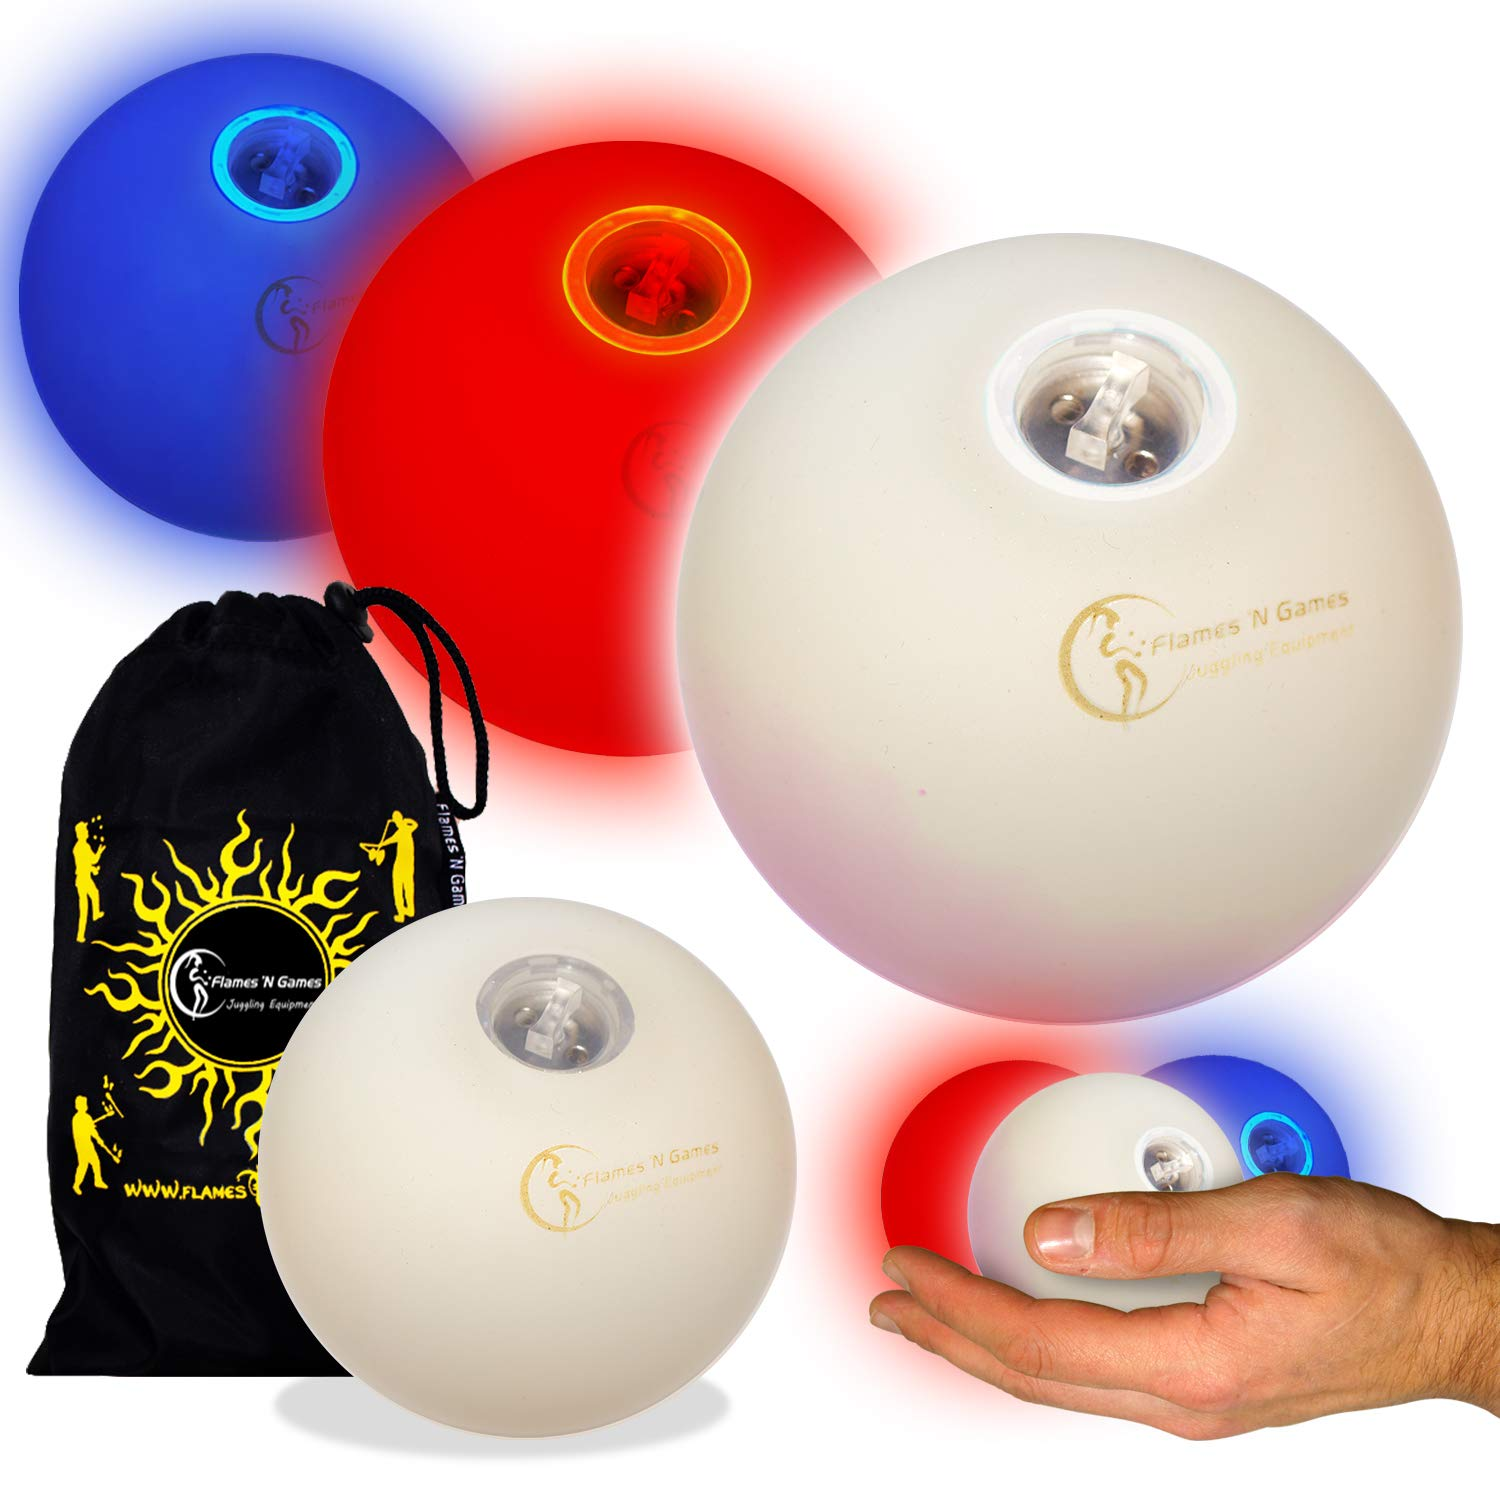 Flames N Games Pro LED Glow Juggling Balls Ultra Bright Battery Powered Glow LED Juggling Ball Sets with Travel Bag.